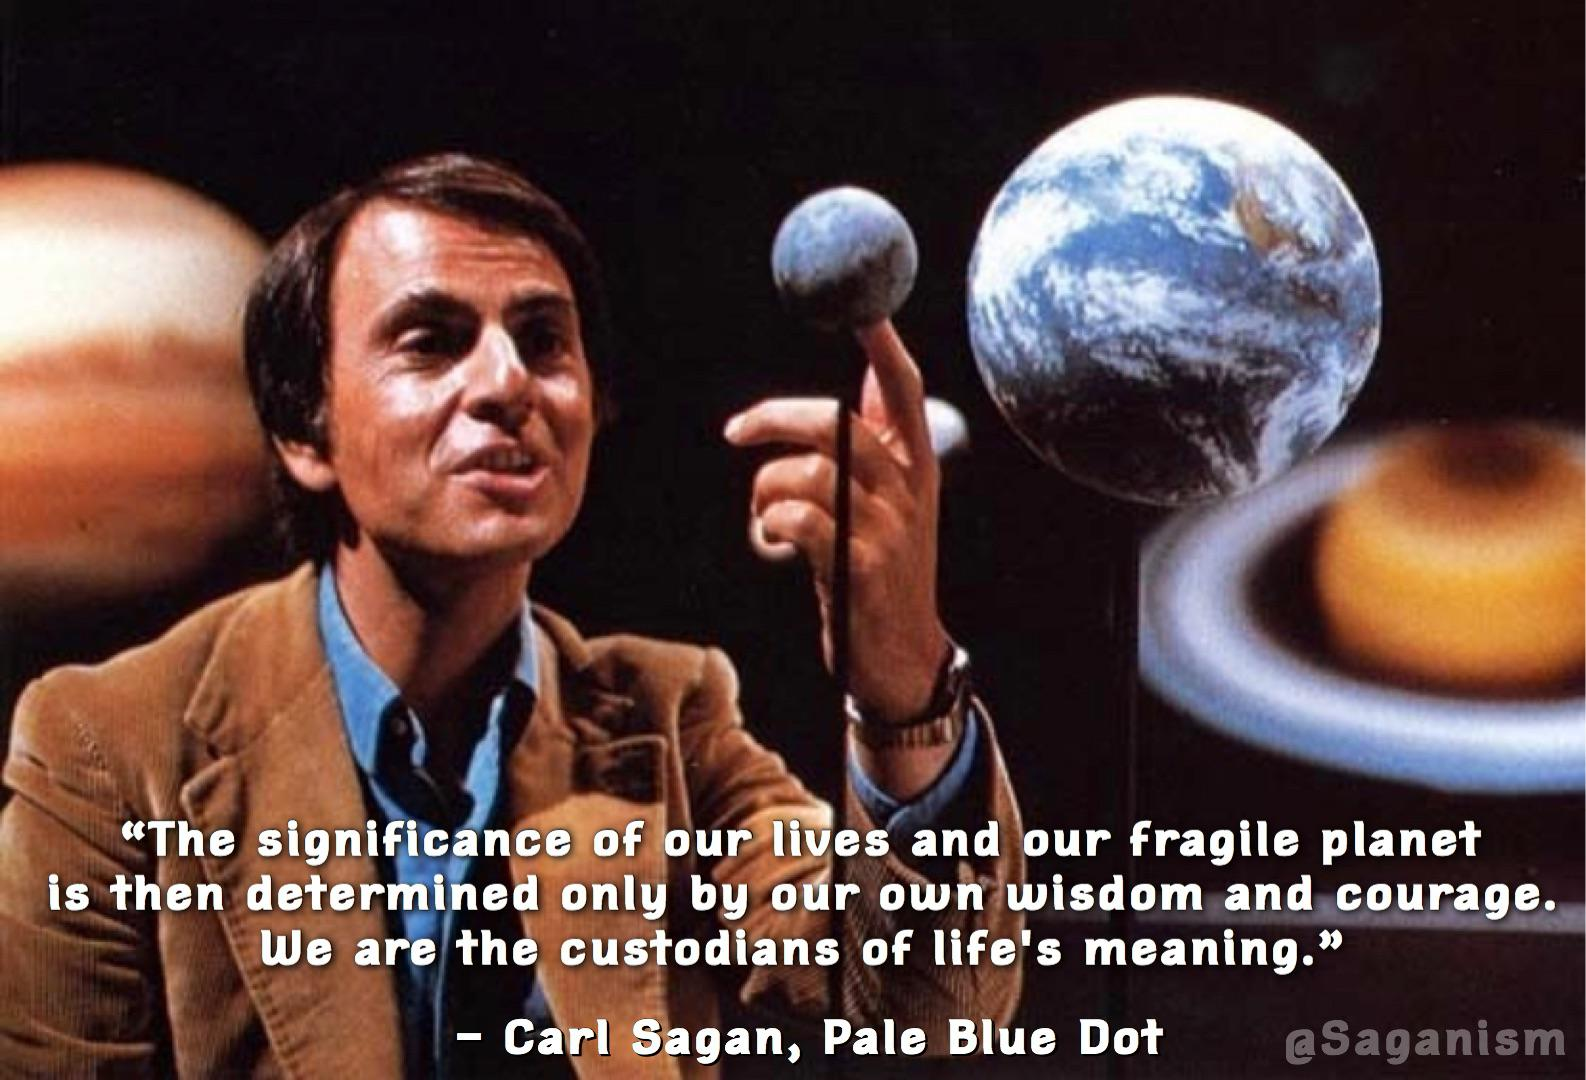 """We are the custodians of life's meaning"" – Carl Sagan [1586 x 1080]"